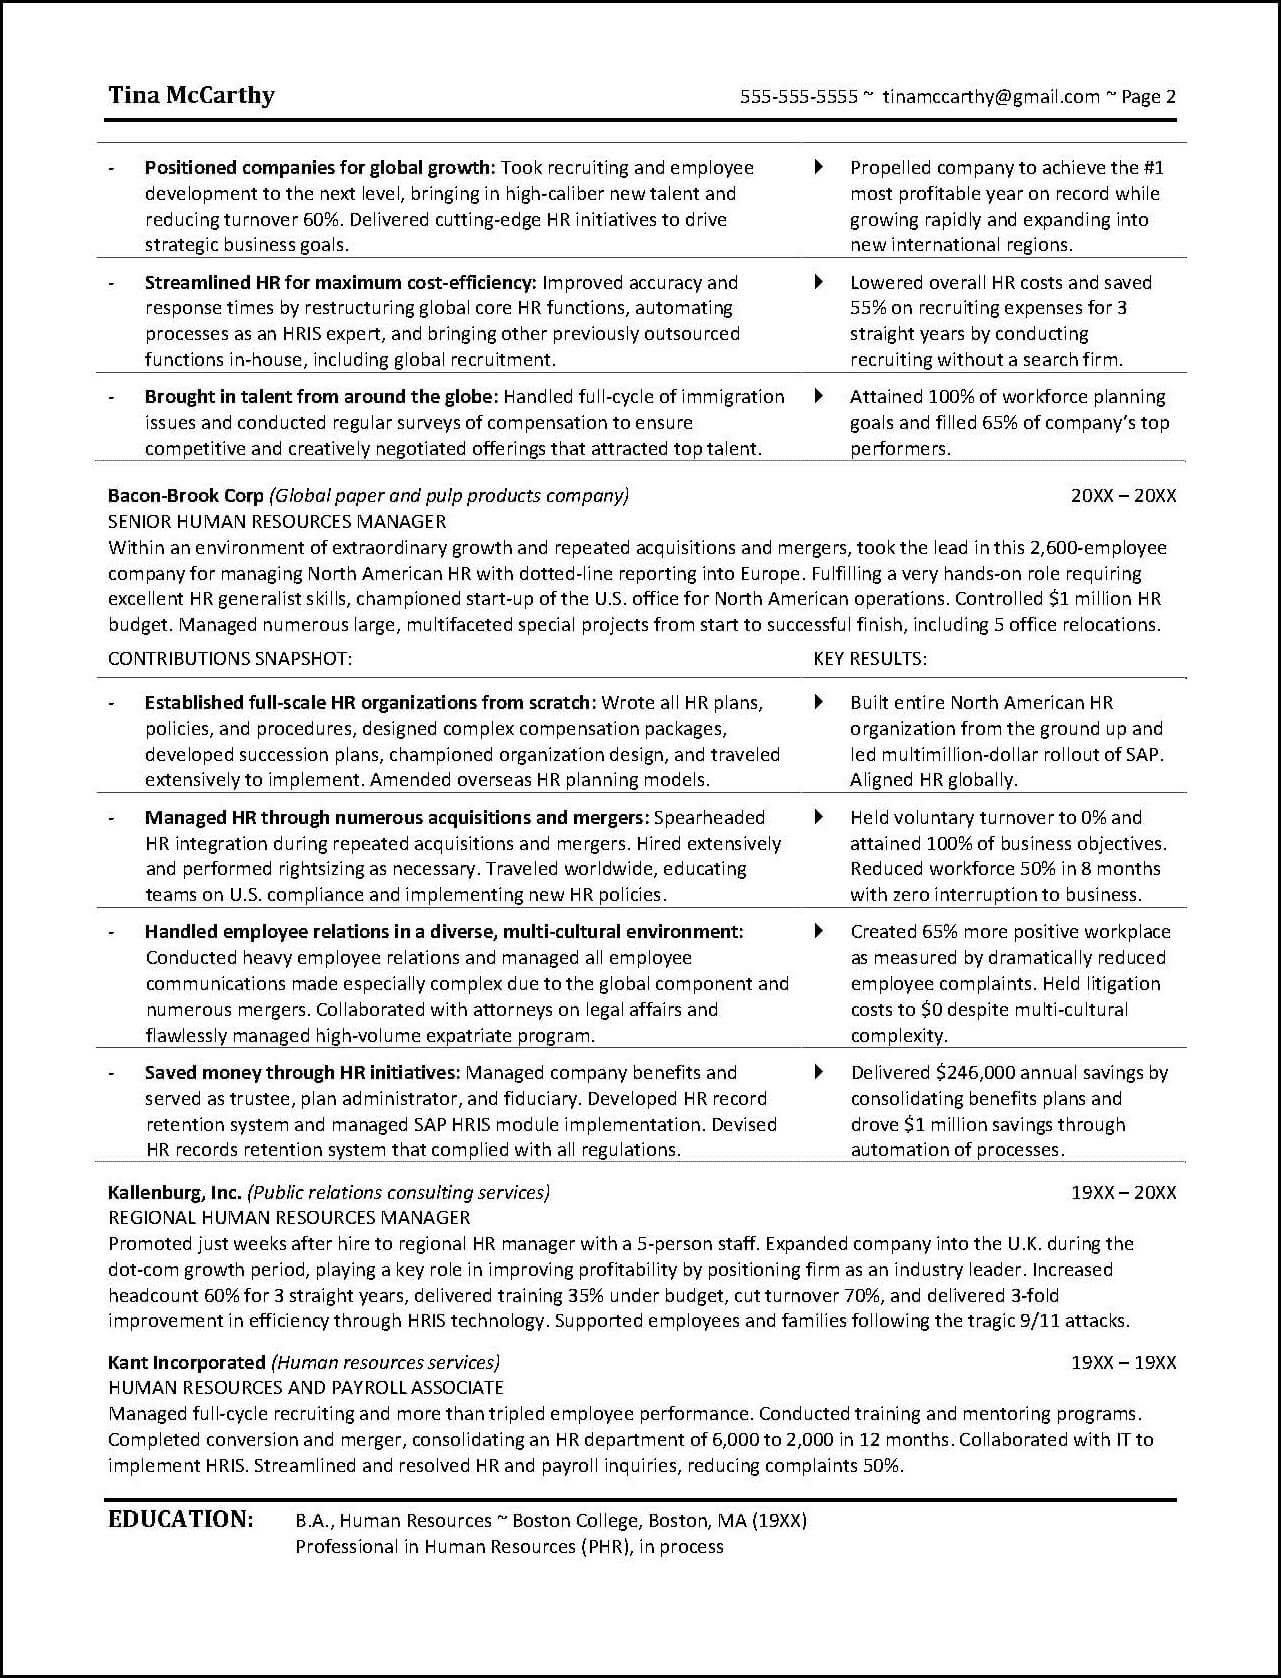 Human Resources Resume Page 2  Recruiting Coordinator Resume